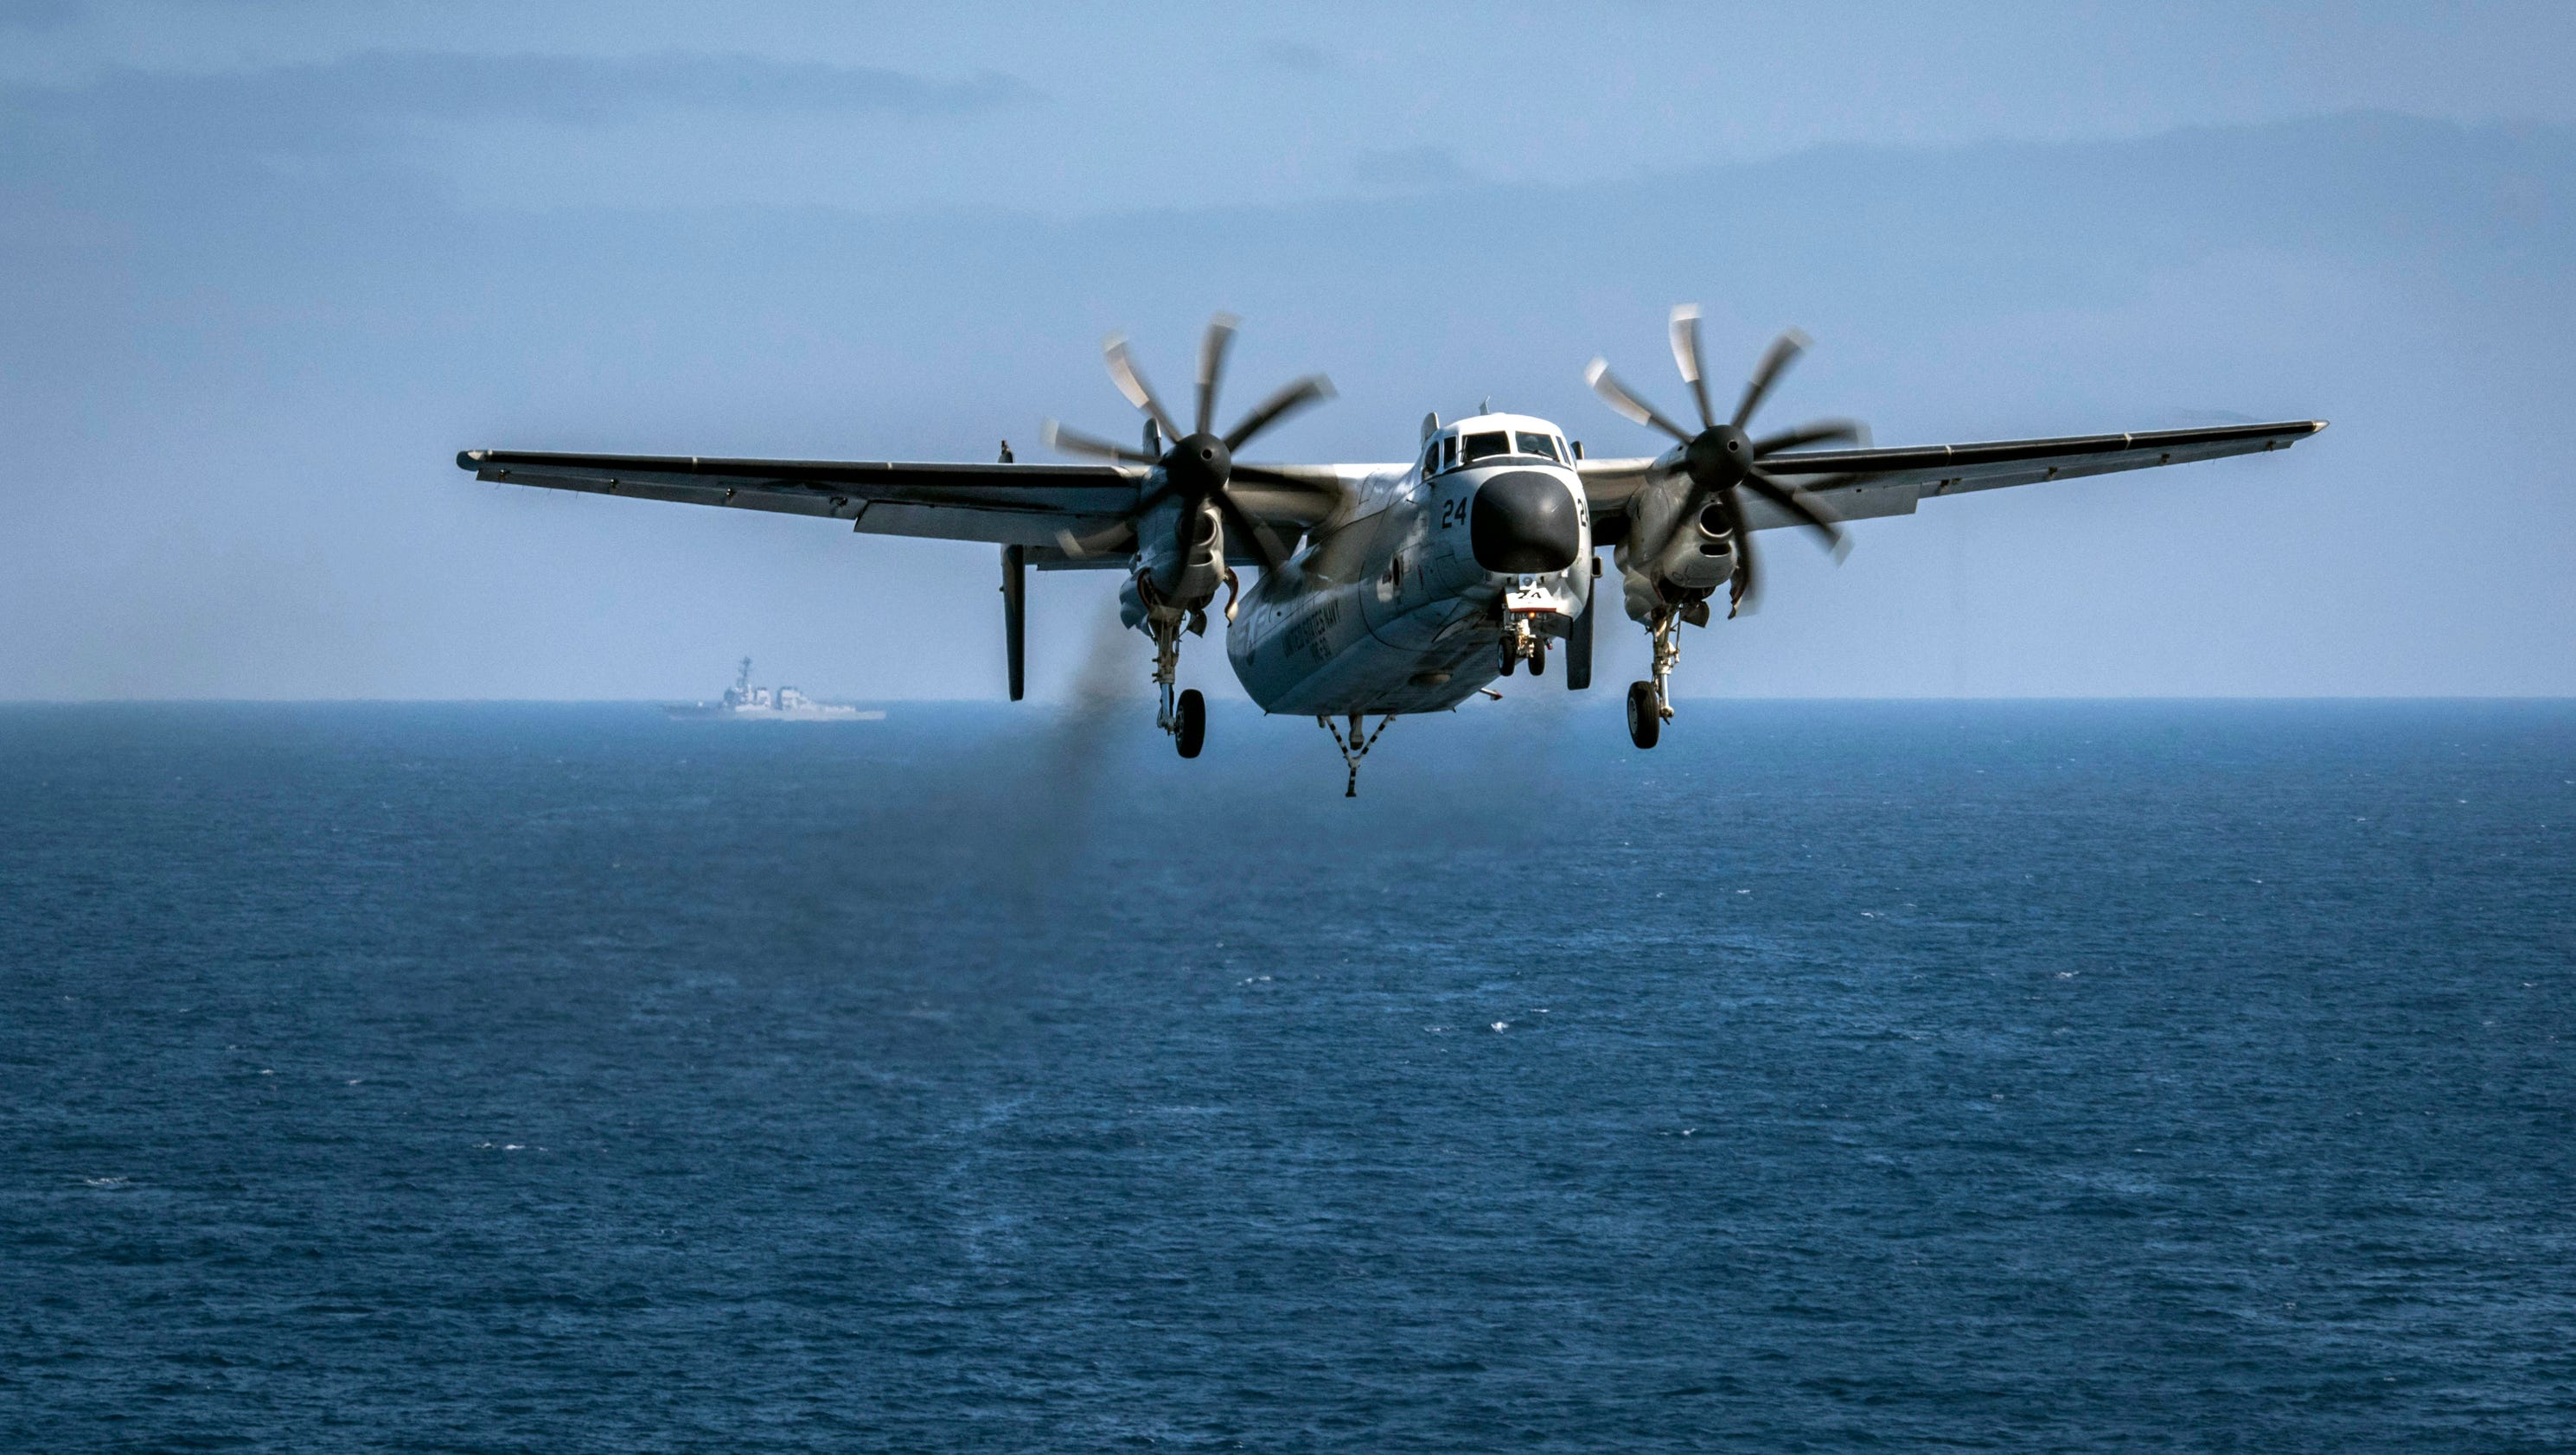 Search ends for 3 U.S. sailors missing in Navy aircraft crash